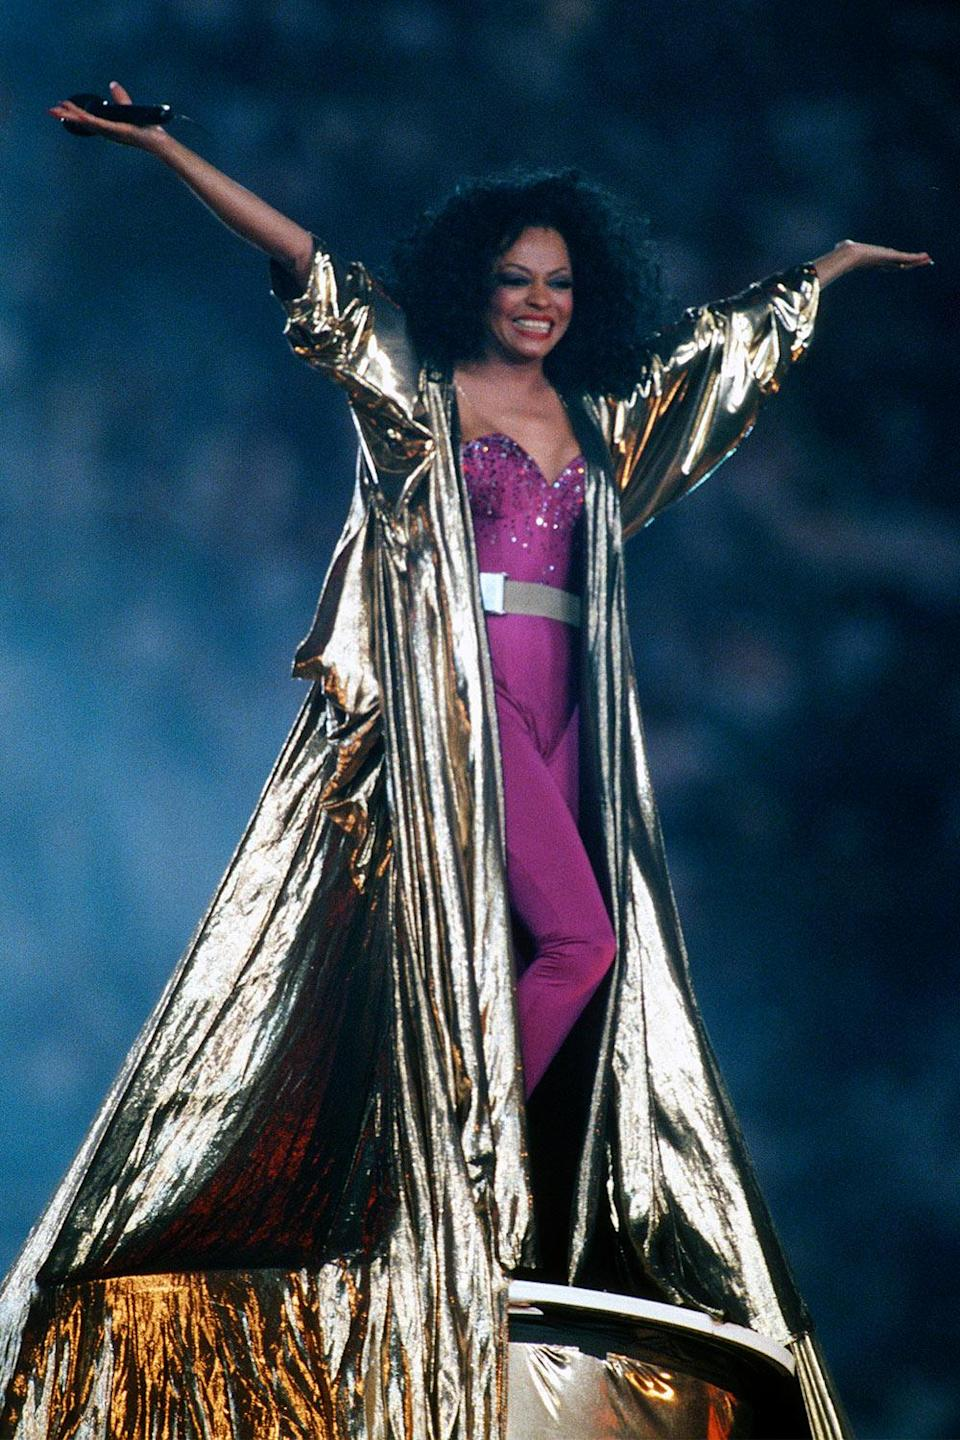 <p>In an epic gold jacket during the Super Bowl XXX halftime show in 1996 in Tempe, Arizona.</p>